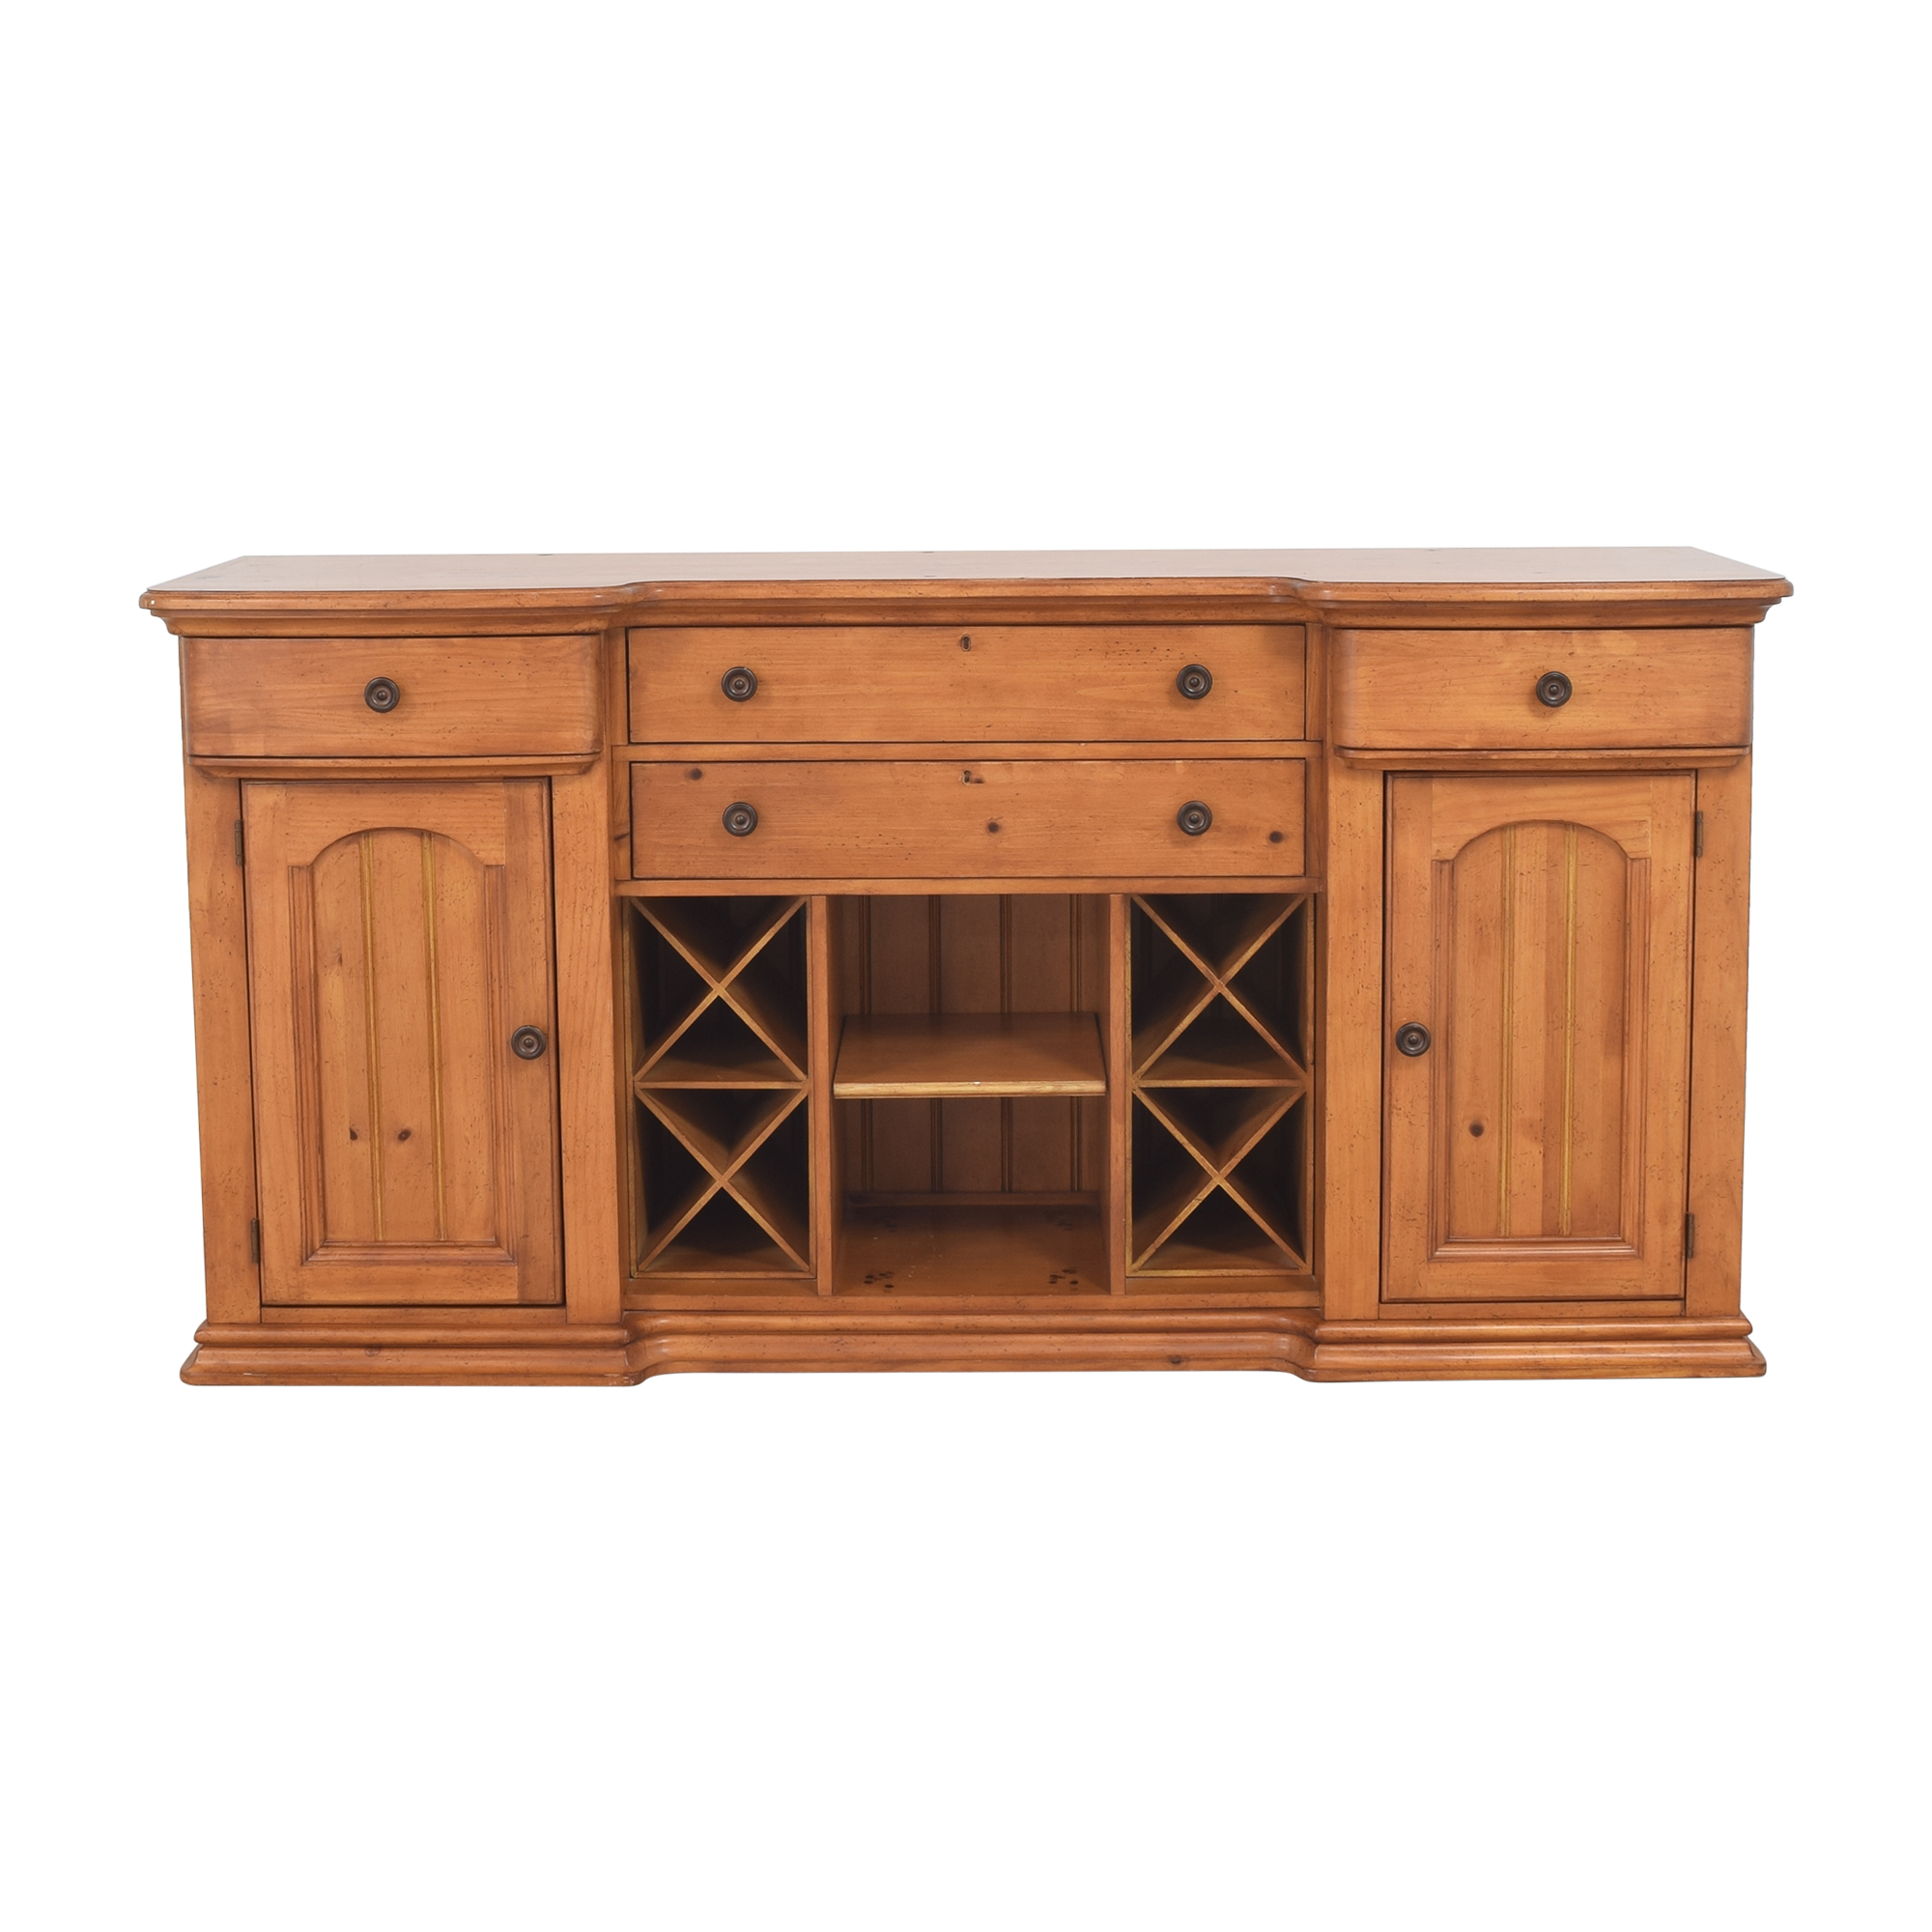 Stanley Furniture Stanley Furniture Cottage Revival Vineyard Service Cabinet Storage